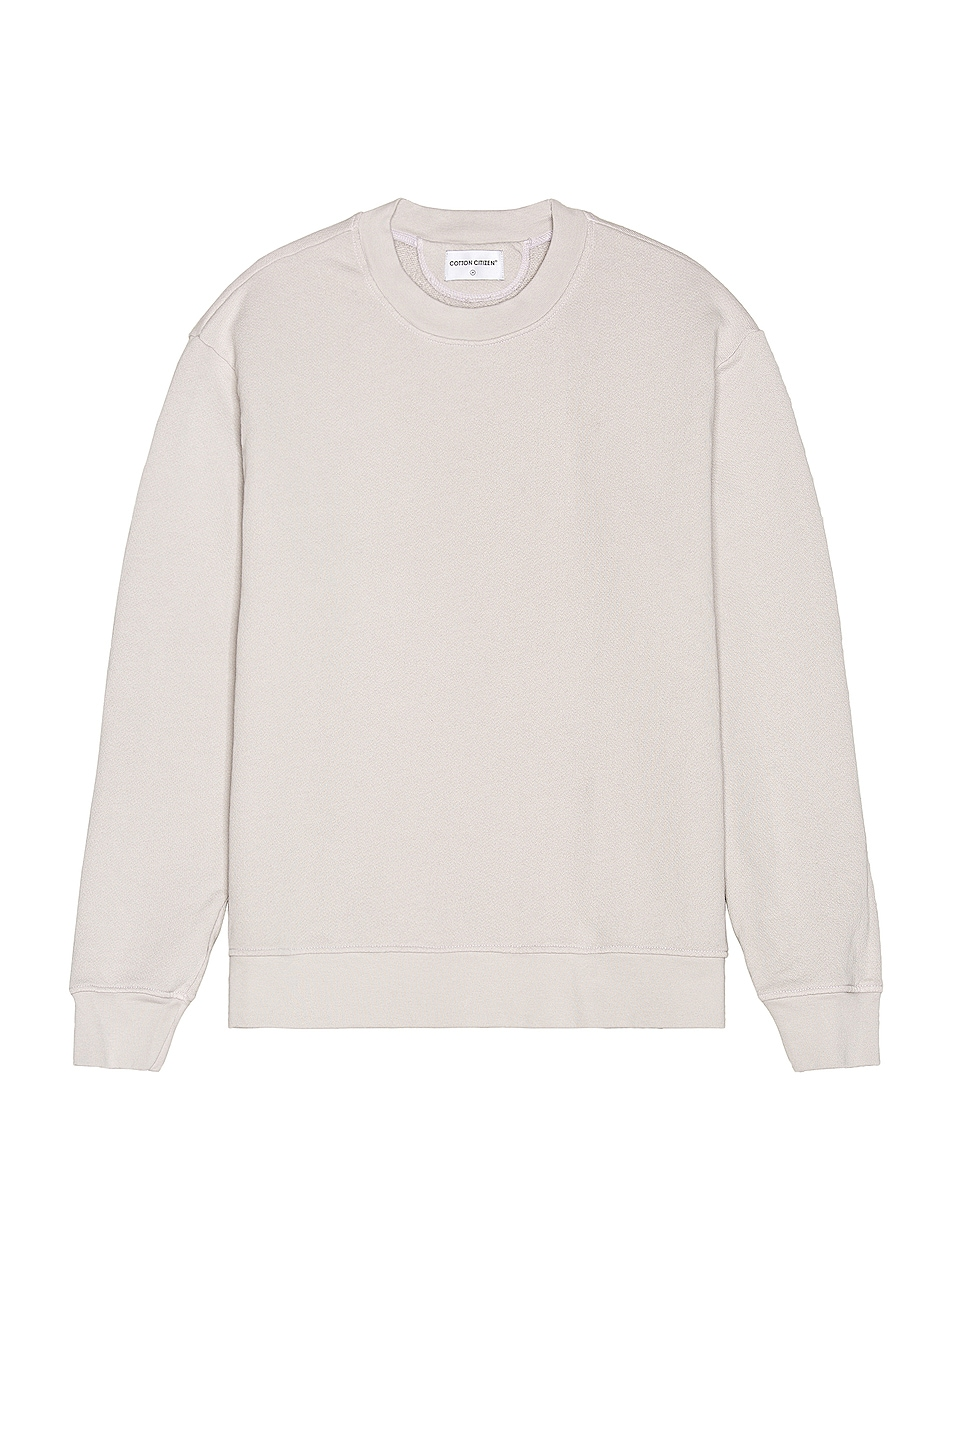 Image 1 of COTTON CITIZEN Bronx Crewneck in Vintage White Stone